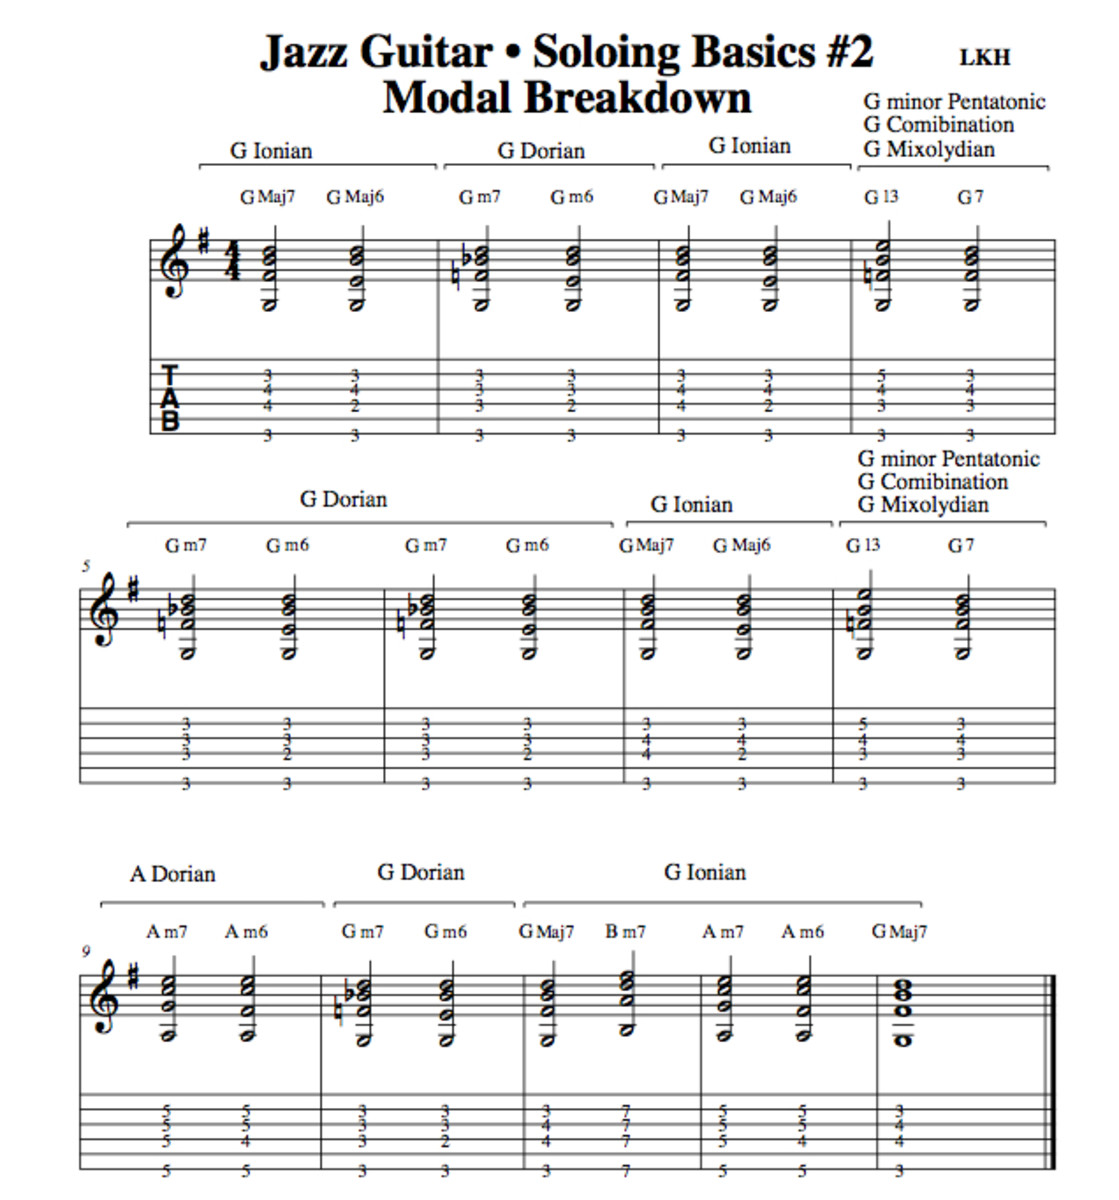 Jazz Guitar Lessons • Soloing Basics Part Two • Standard Notation, Tab, Theory, Videos, Chords